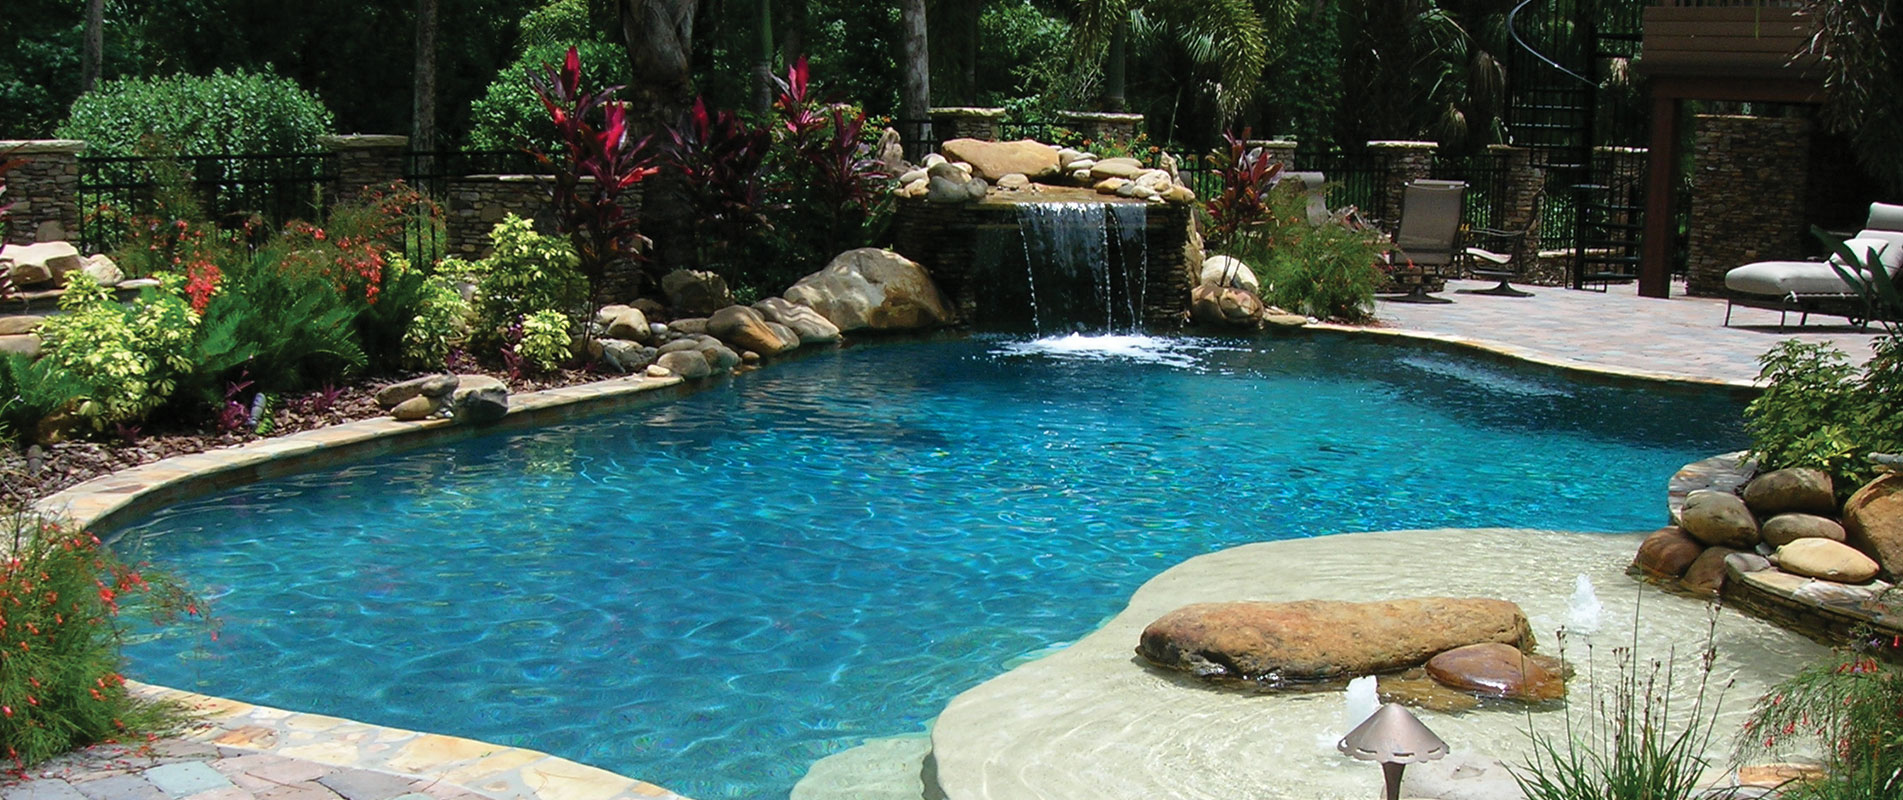 1-lagoon-style-pool-with-rock-waterfall